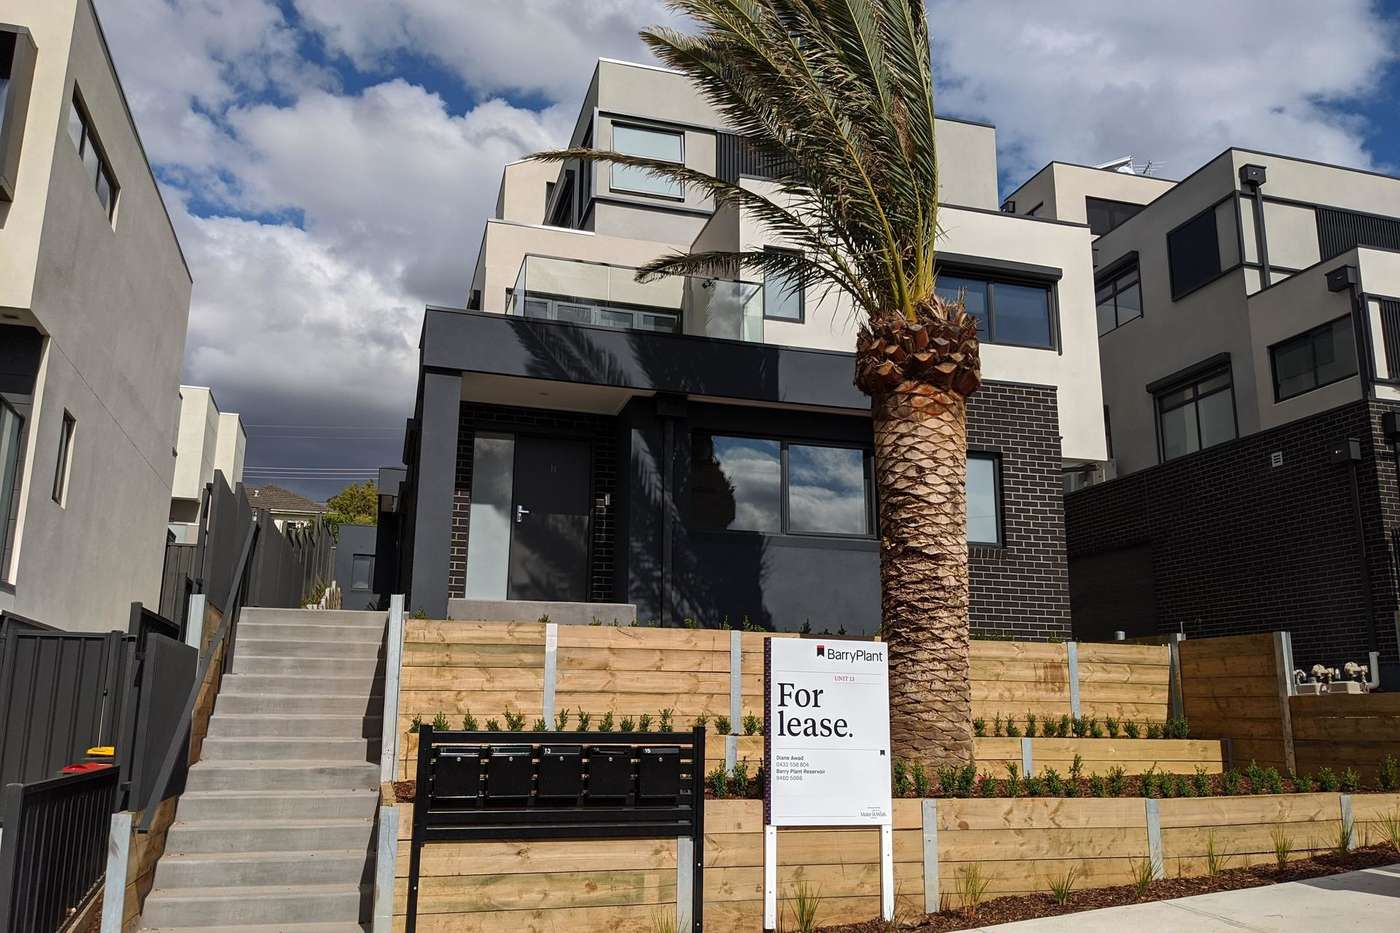 Main view of Homely townhouse listing, 13/14-16 Grover Street, Pascoe Vale, VIC 3044